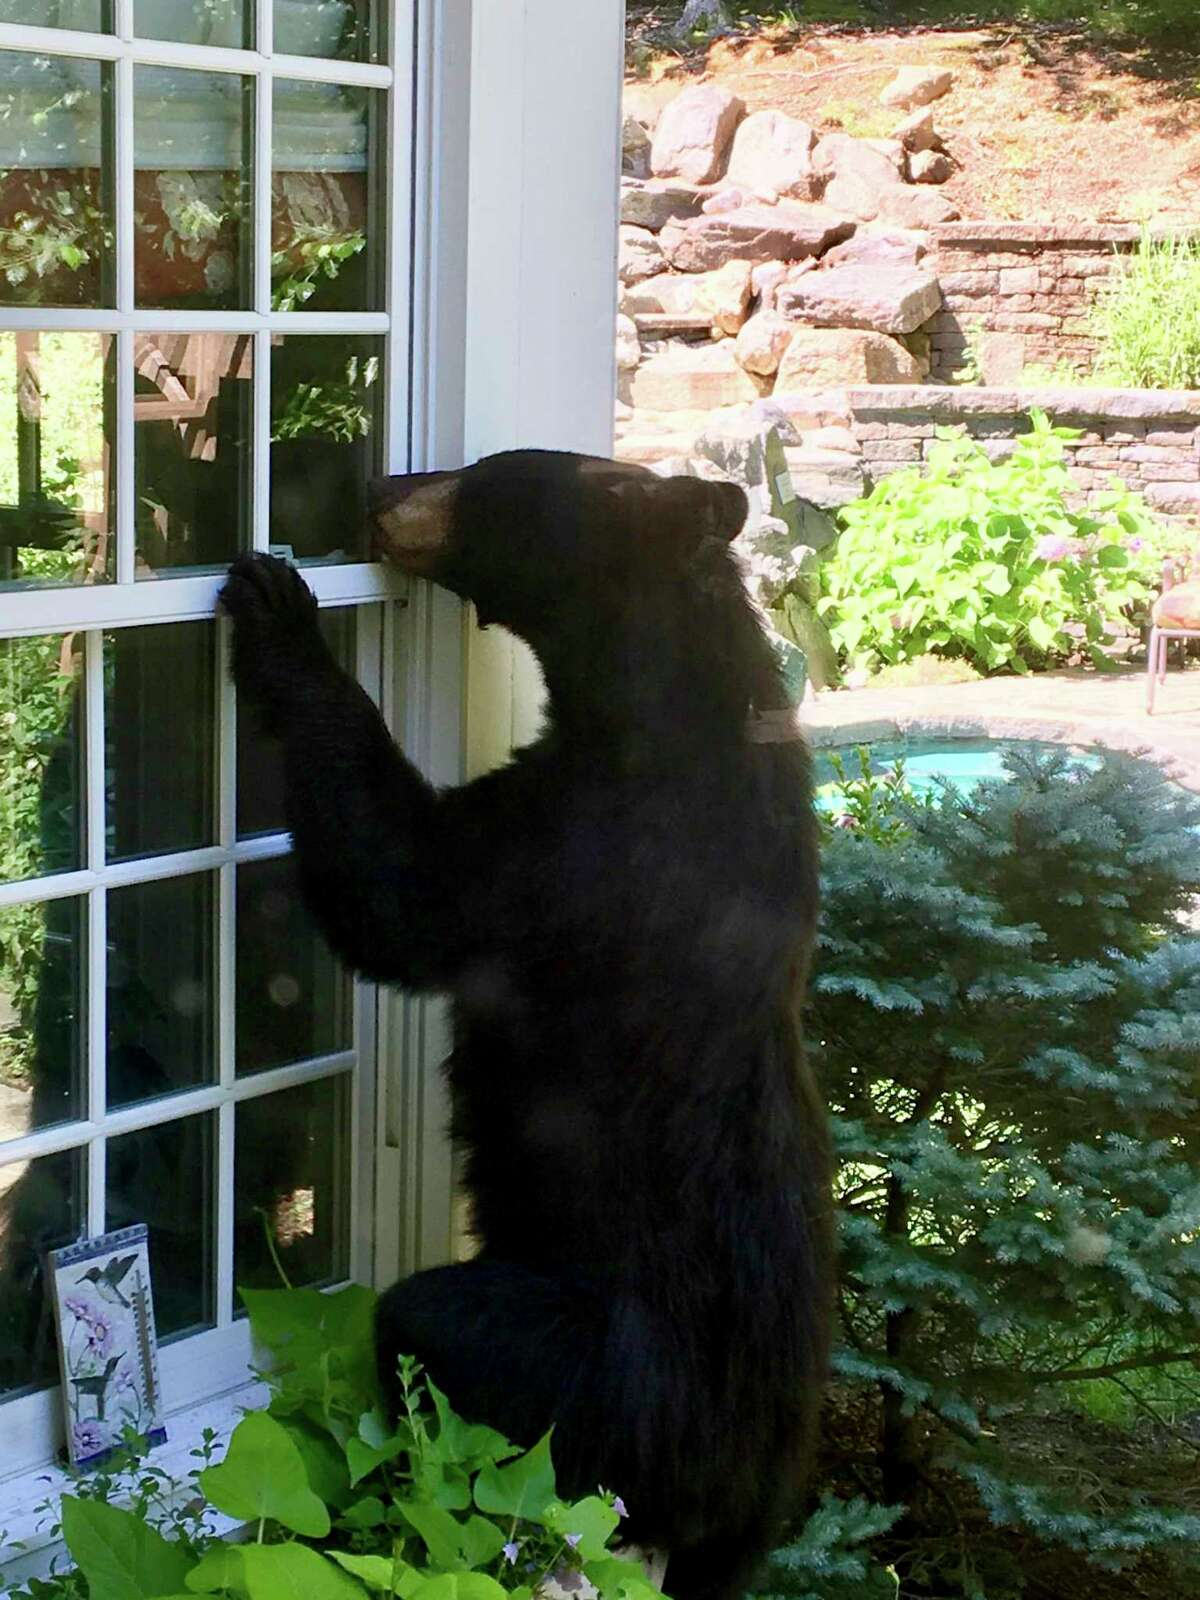 Hiker knocked down by bear in Southbury: 'this was not an attack' A Newtown man injured by a black bear while hiking near Lake Zoar in Southbury said he was not attacked and that he plans to continue hiking in those woods, according to a report from an animal advocacy organization.